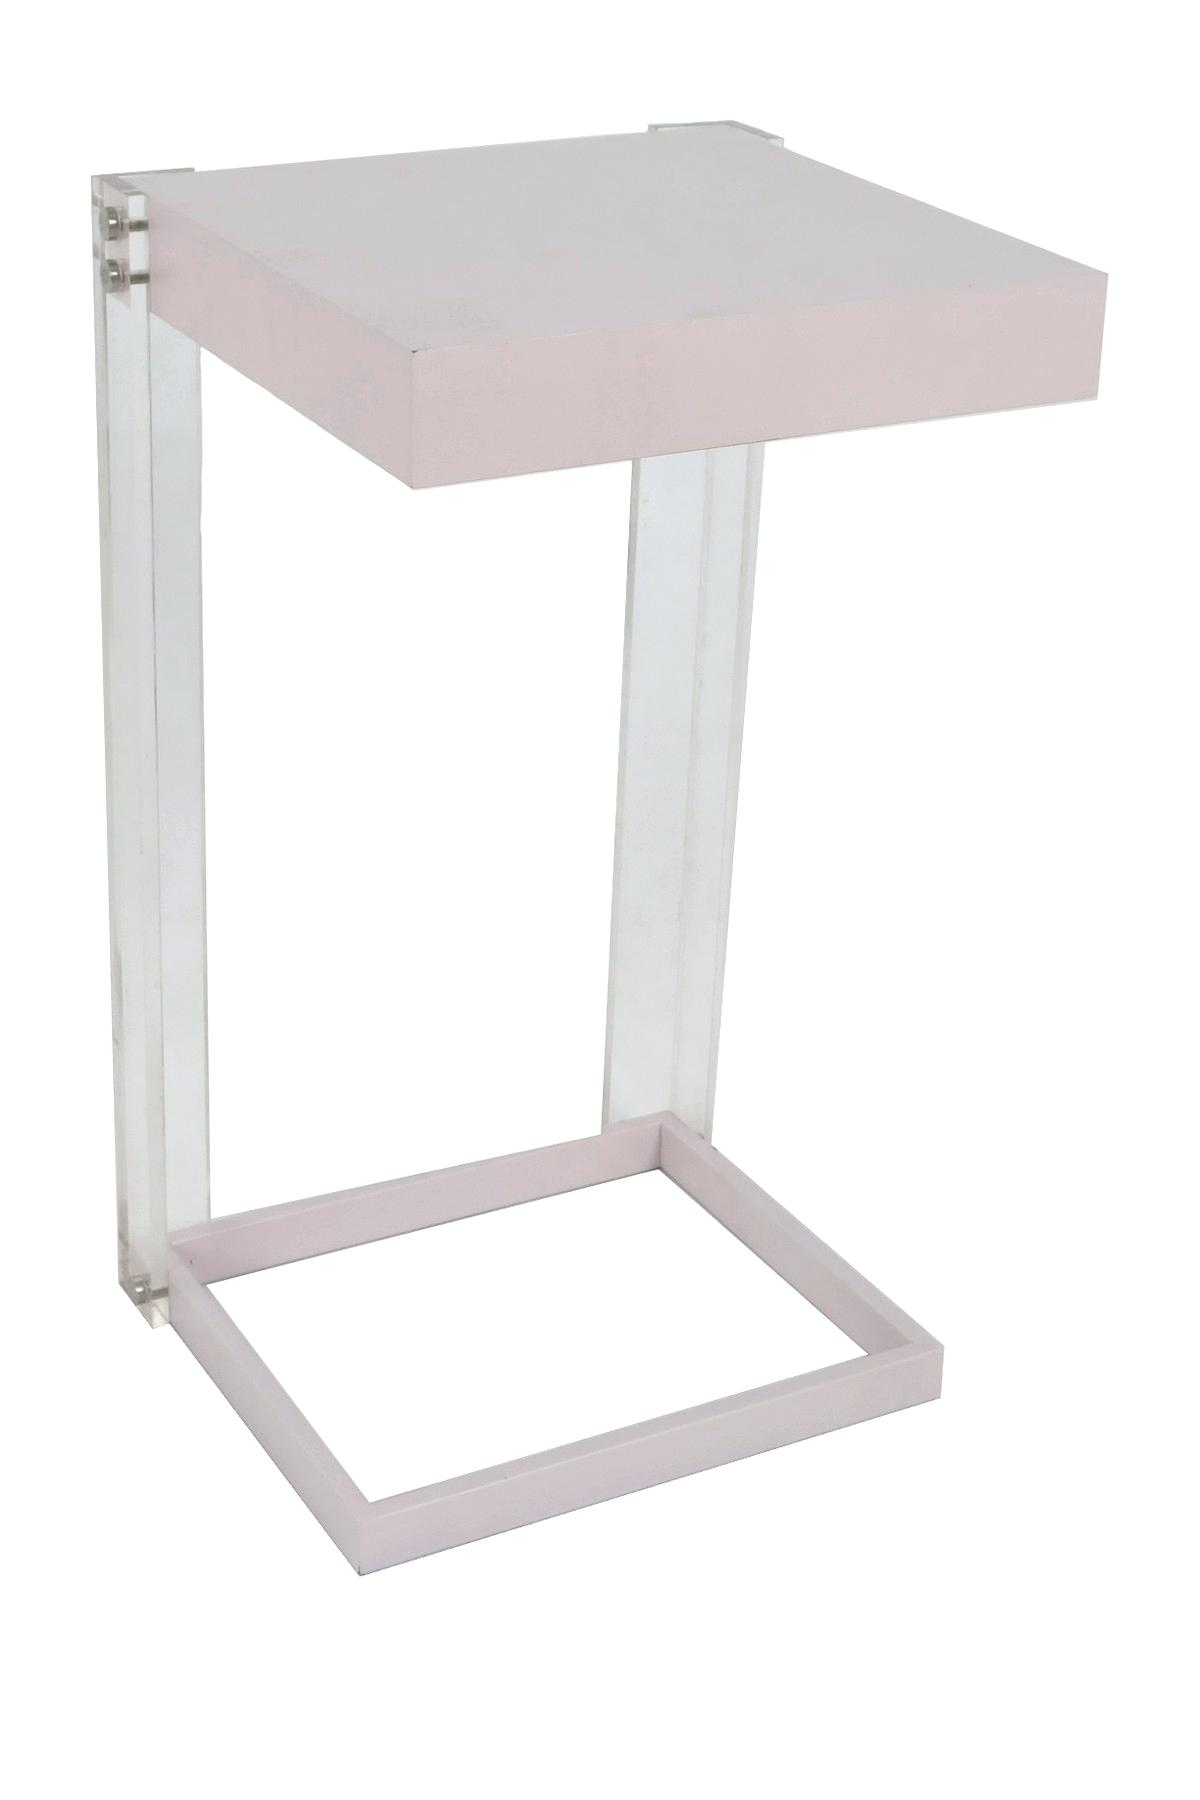 pink accent table home acrylic wood light floating metal threshold gold wooden chest coffee modern night lamp rustic half moon wicker patio and chairs round end tables white